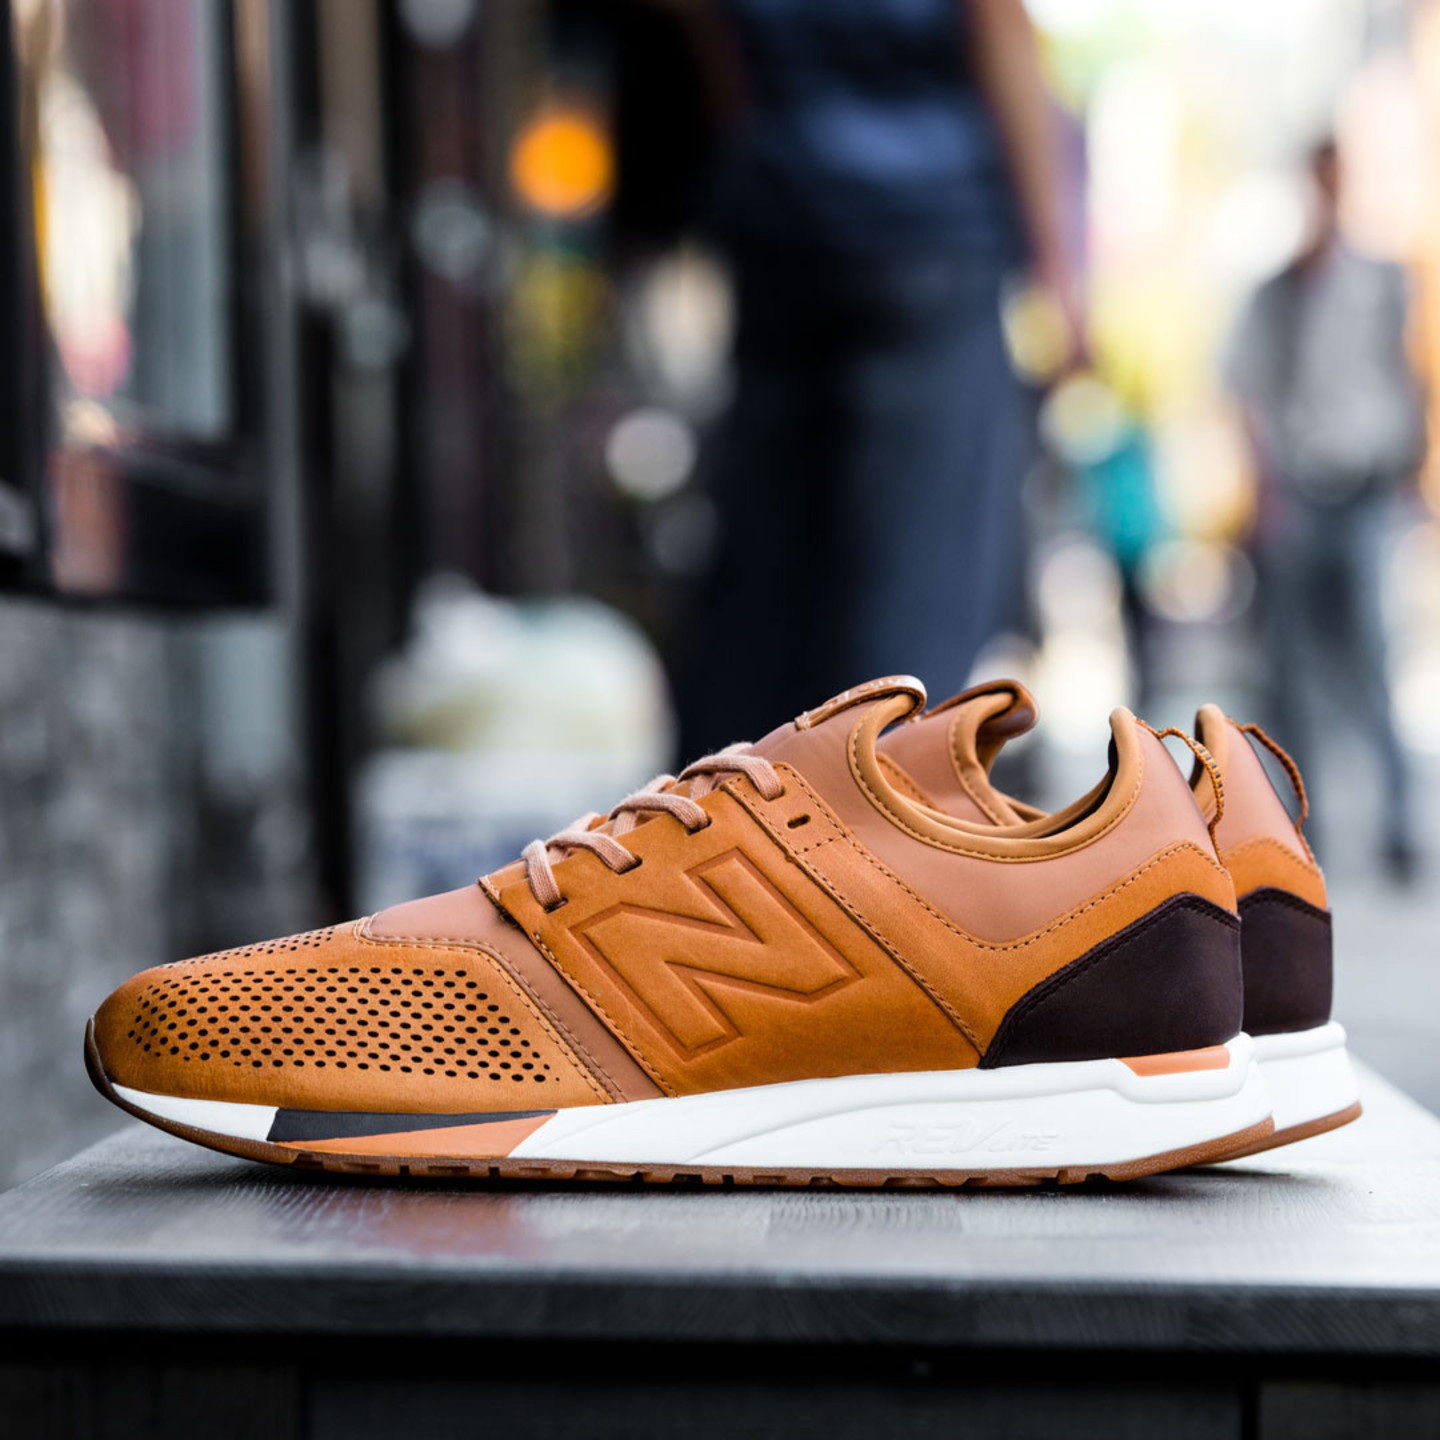 New Balance MRL 247 'Luxe Pack' Tan / Cream / Dark Brown MRL247TA-45.5